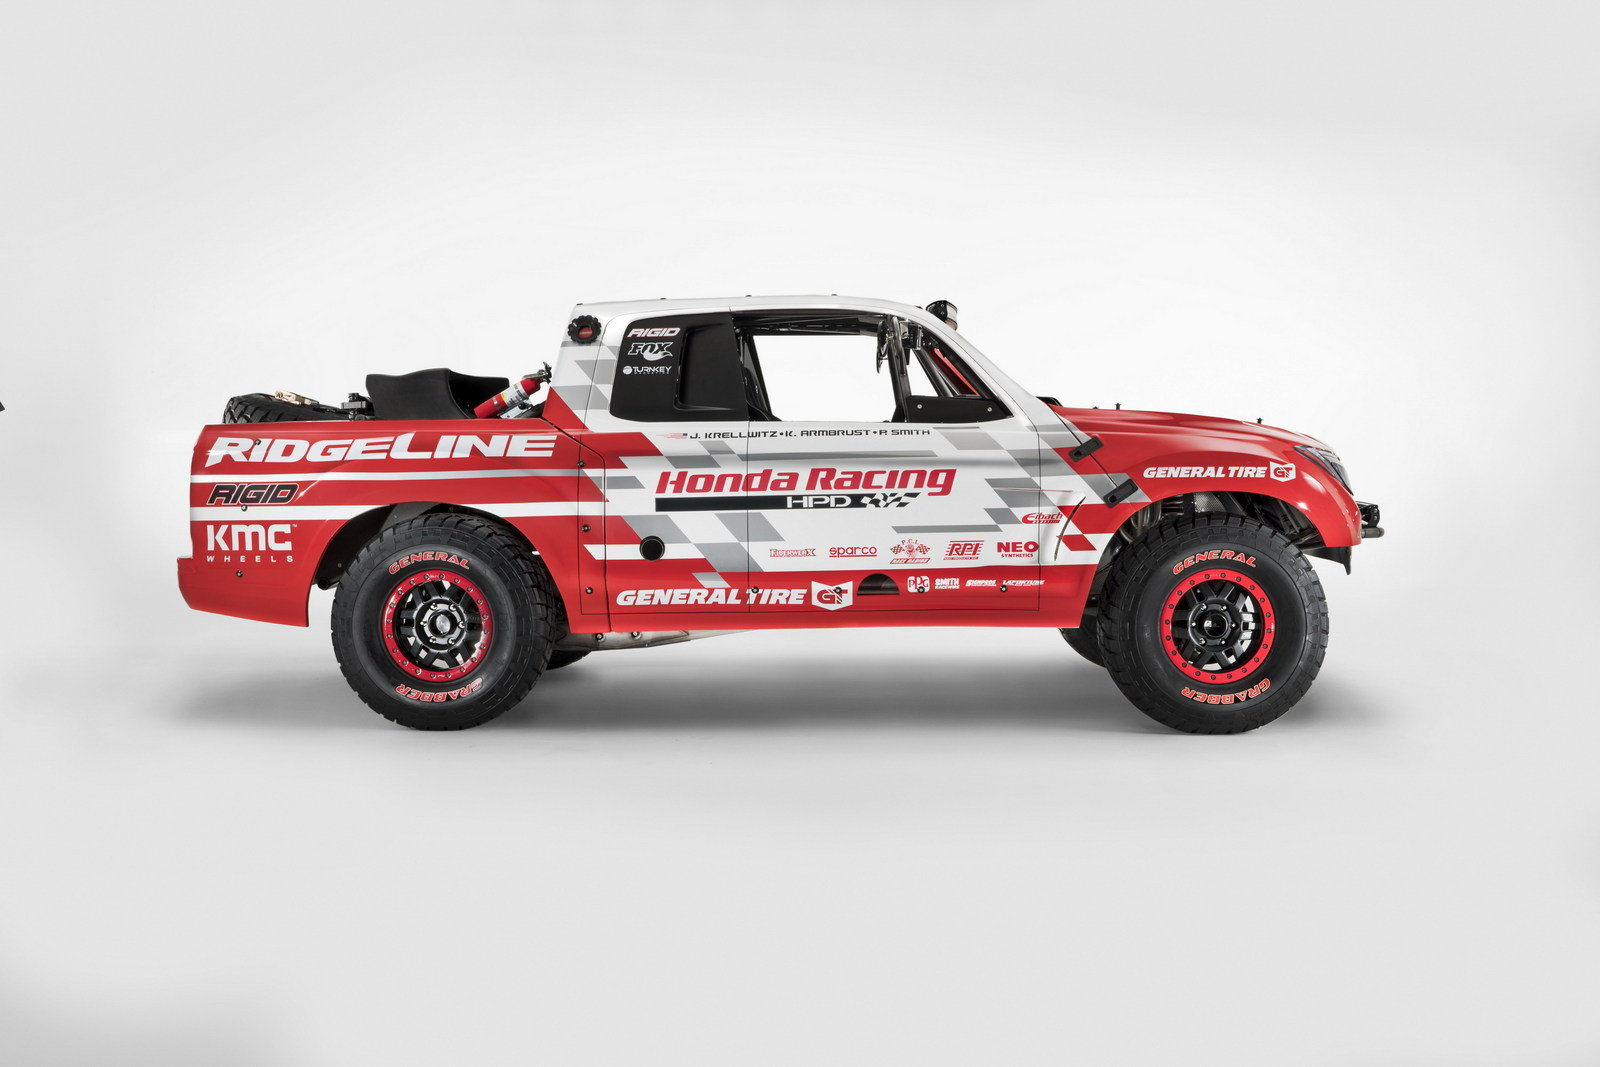 2016 honda ridgeline baja race truck picture 653974 car review top speed. Black Bedroom Furniture Sets. Home Design Ideas